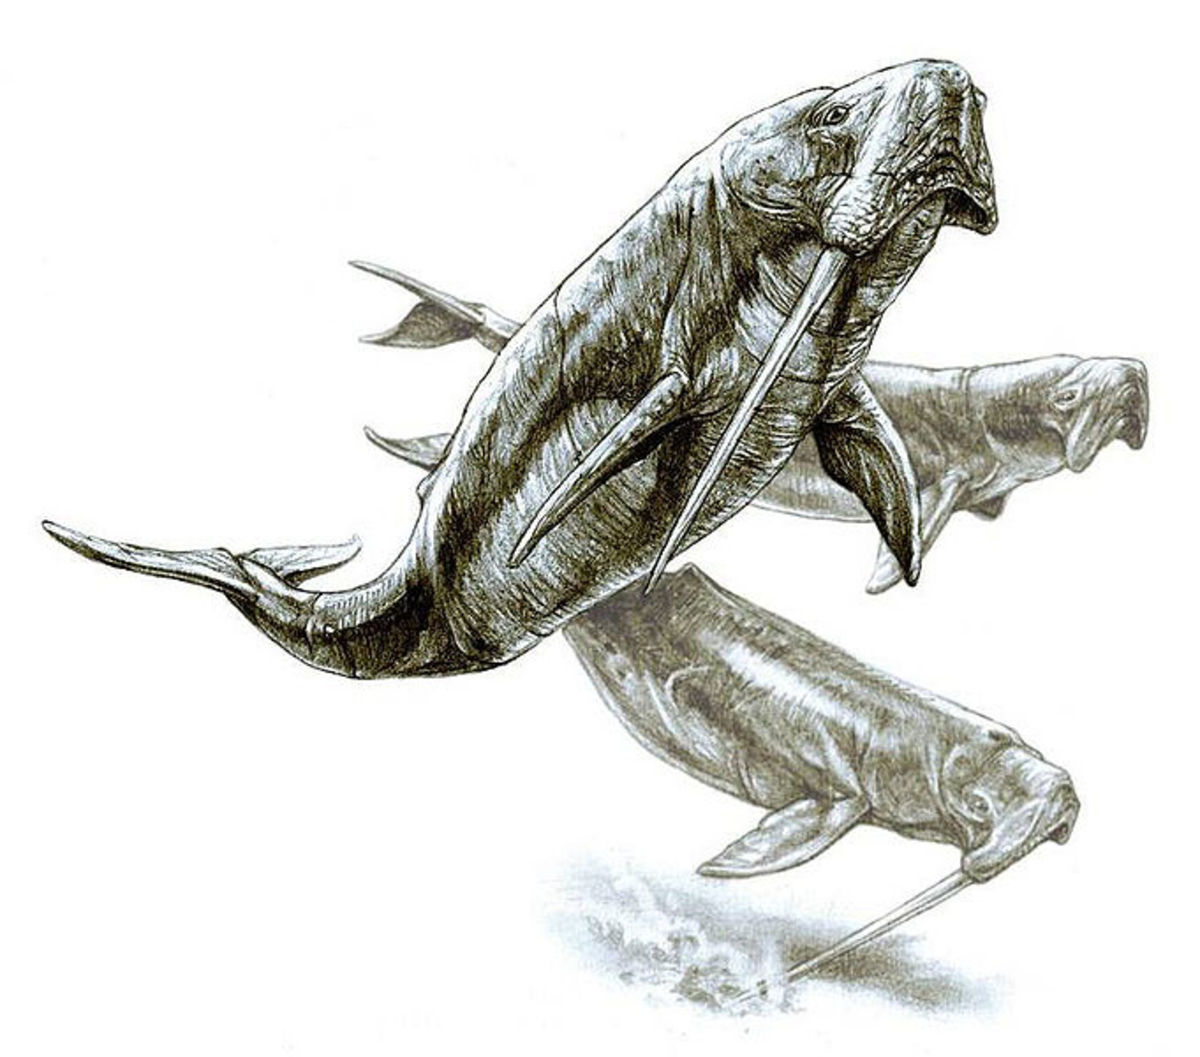 Odobenocetops were a favourite prey of megalodon. Dense beds of kelp offered some protection, as the predators were wary of penetrating the fronds.